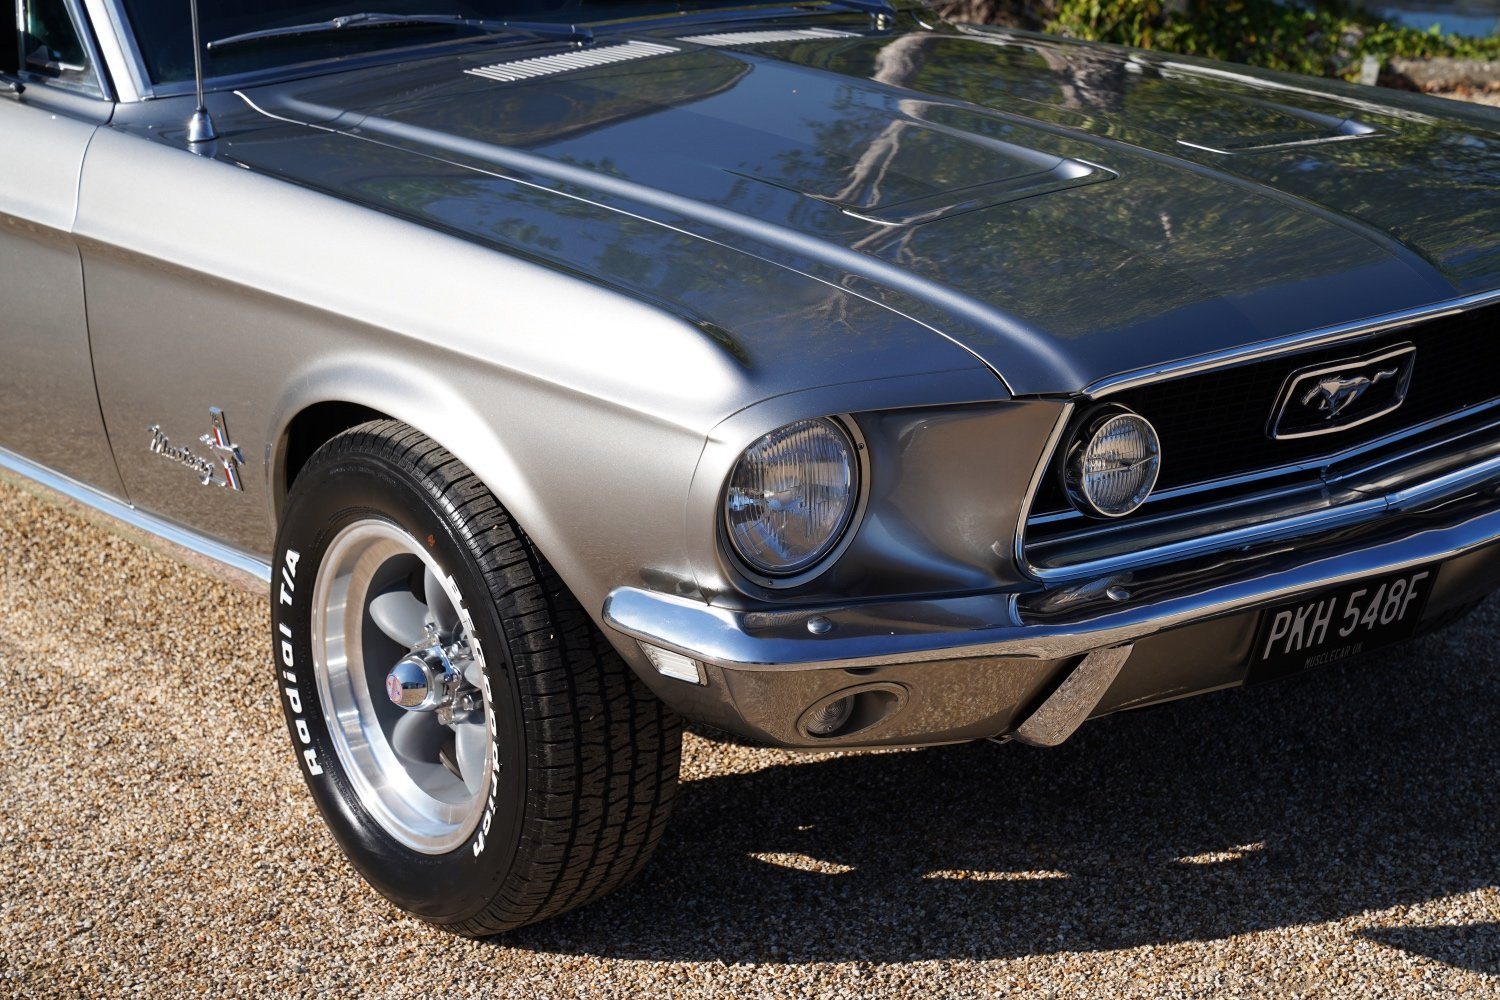 1968 Ford Mustang 289 Automatic V8 Restored & Upgraded SOLD (picture 3 of 6)